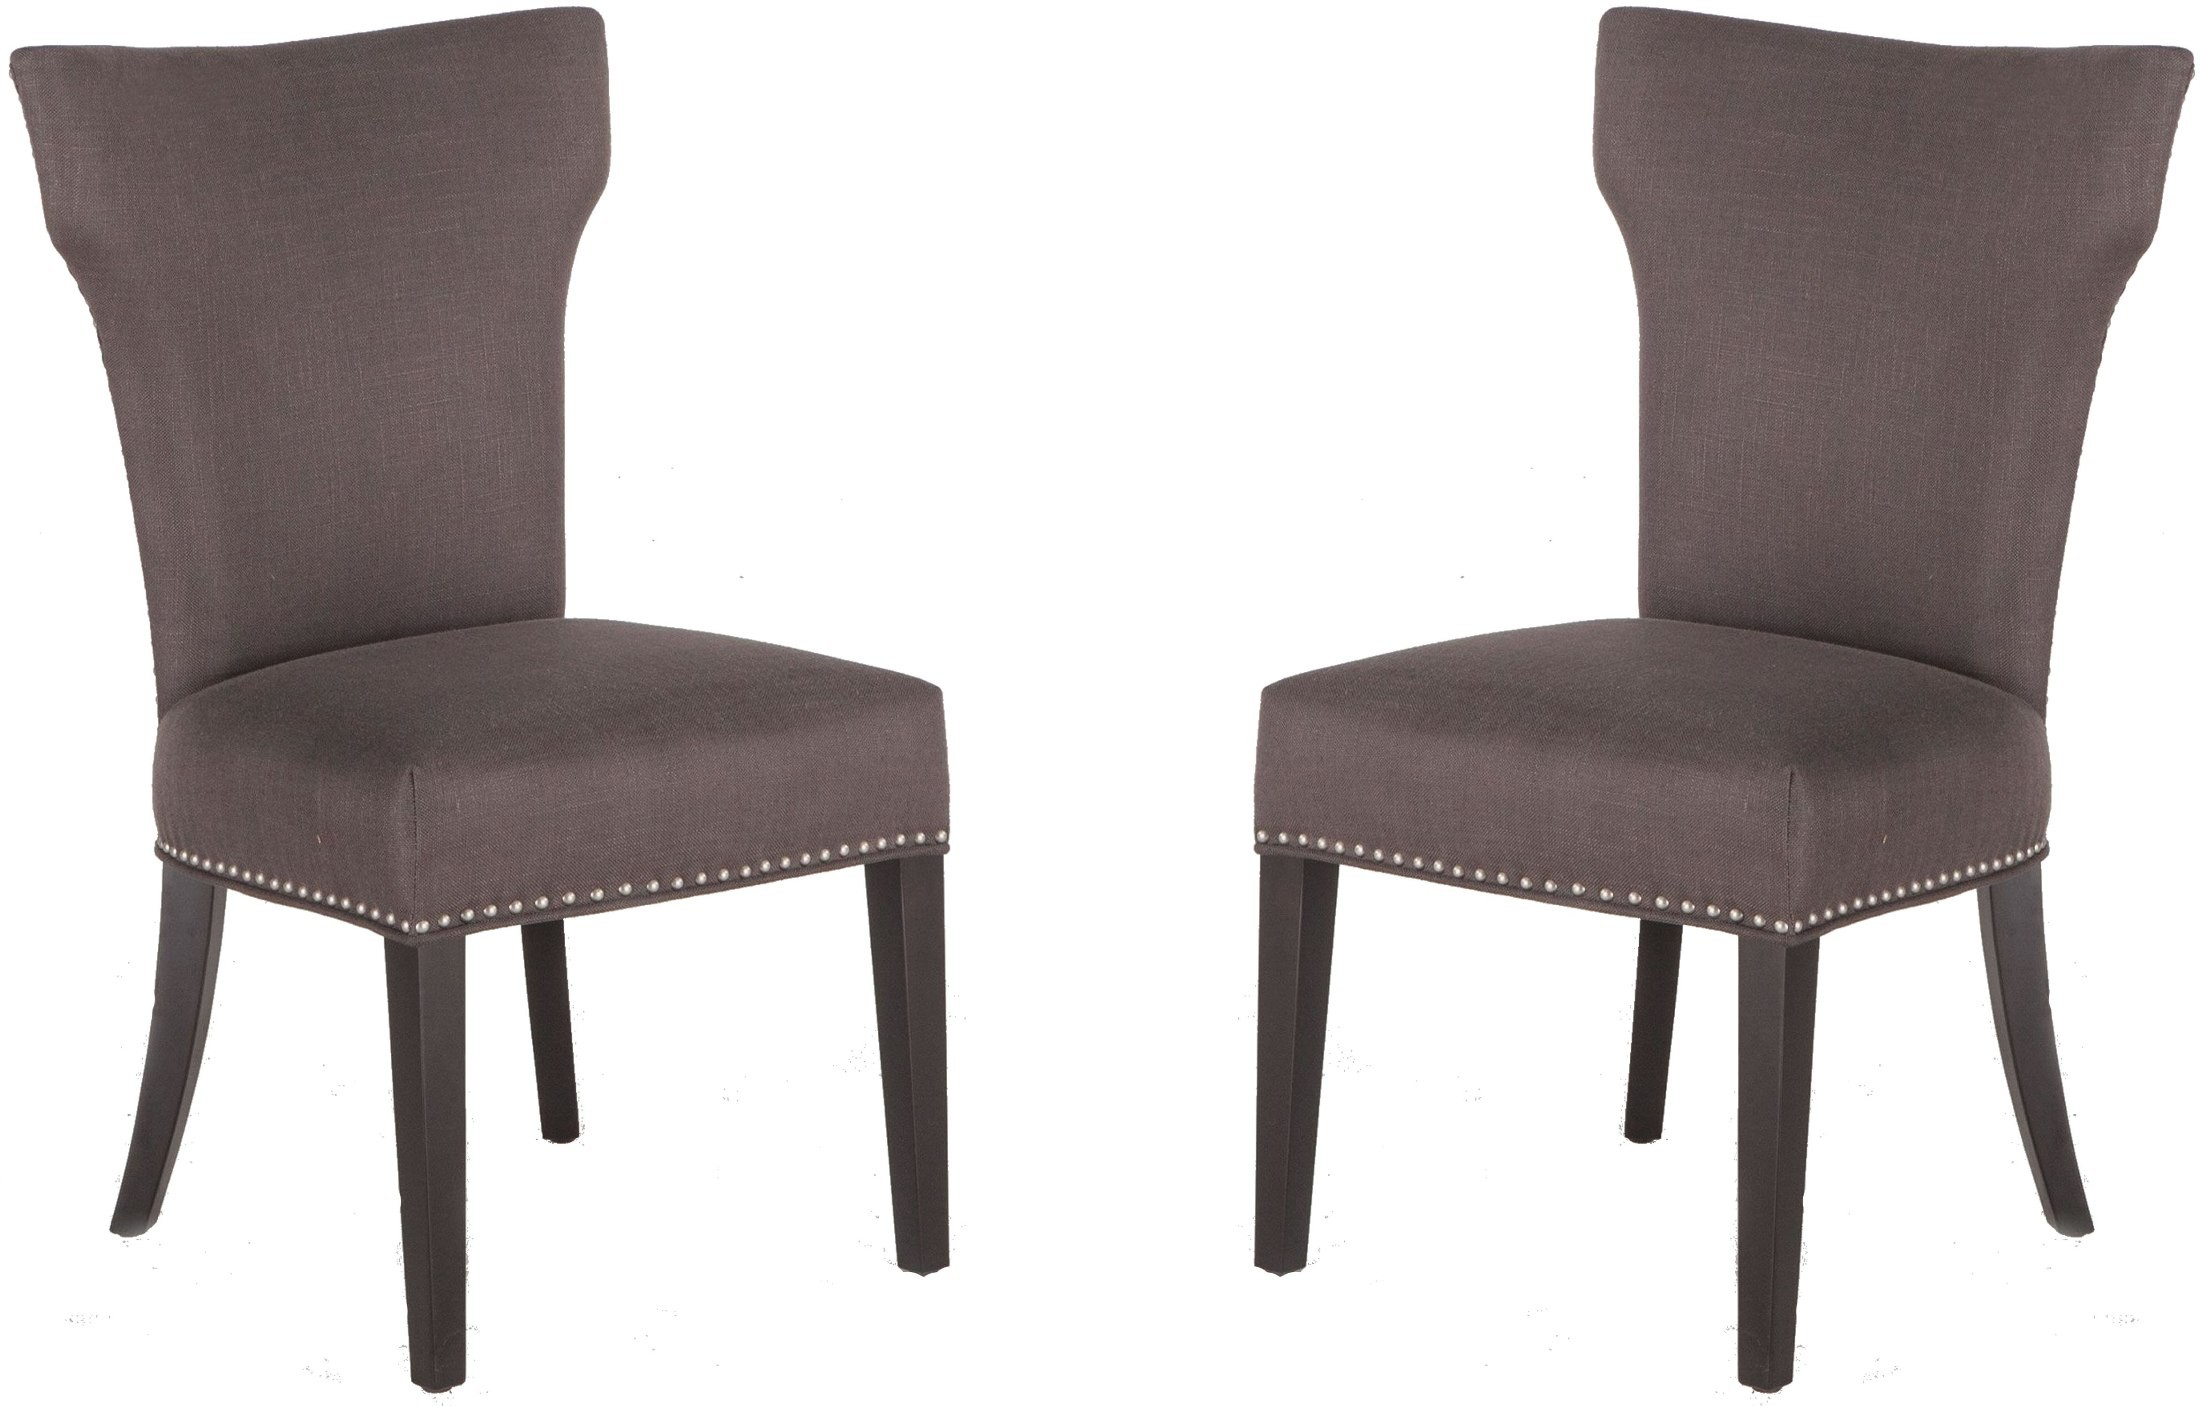 Becca Charcoal Grey Dining Chair Set Of 2 From Home Trends